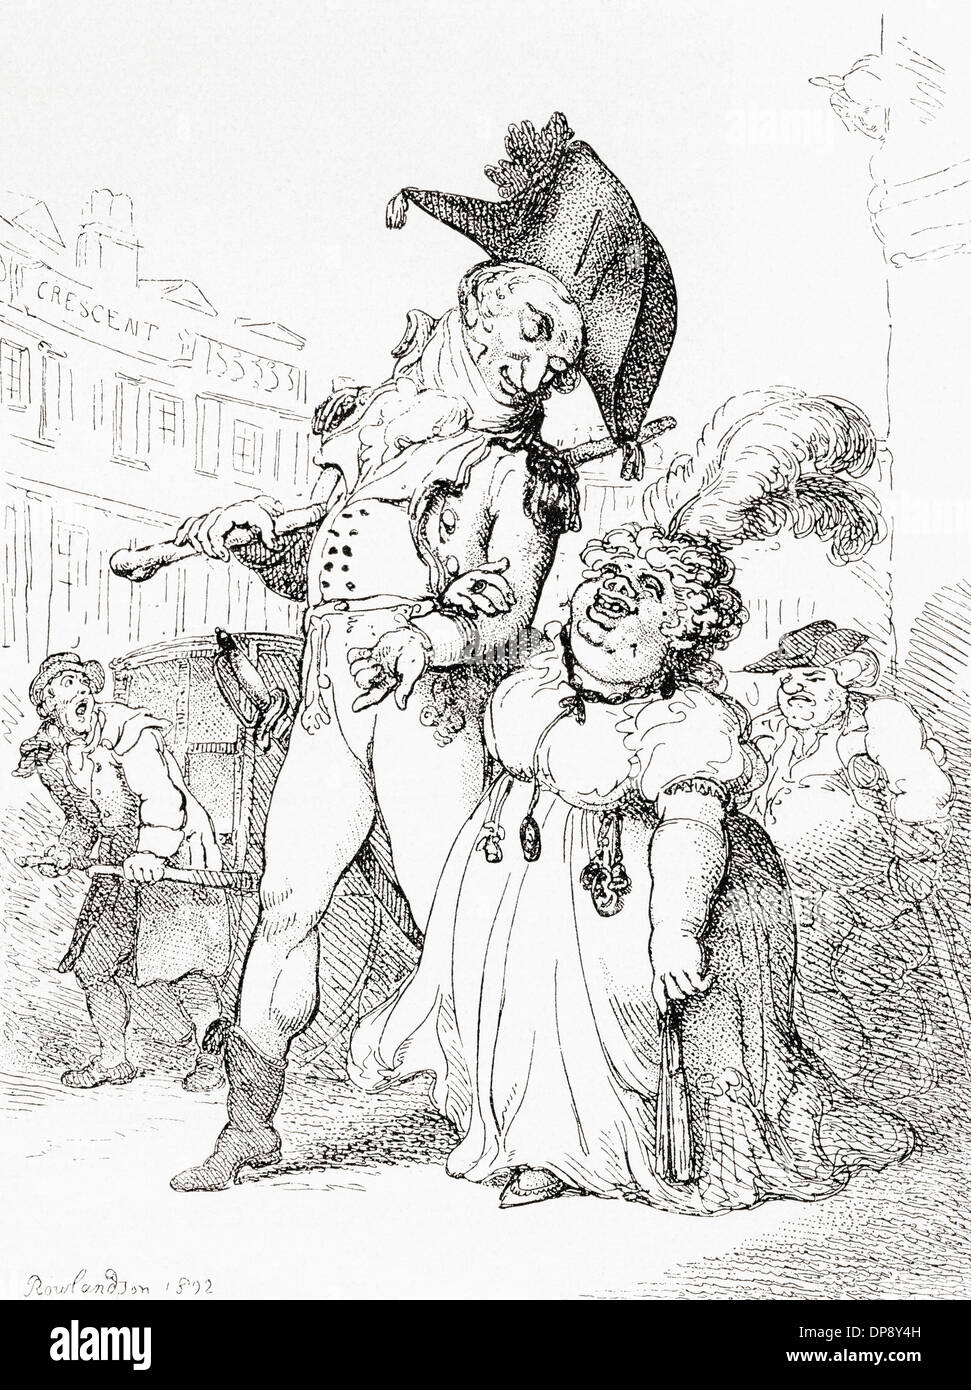 The Successful Fortune Hunter, Or Captain Shelalee leading Miss Marrowfat to the temple of hymen, after Thomas Rowlandson, 1802. - Stock Image